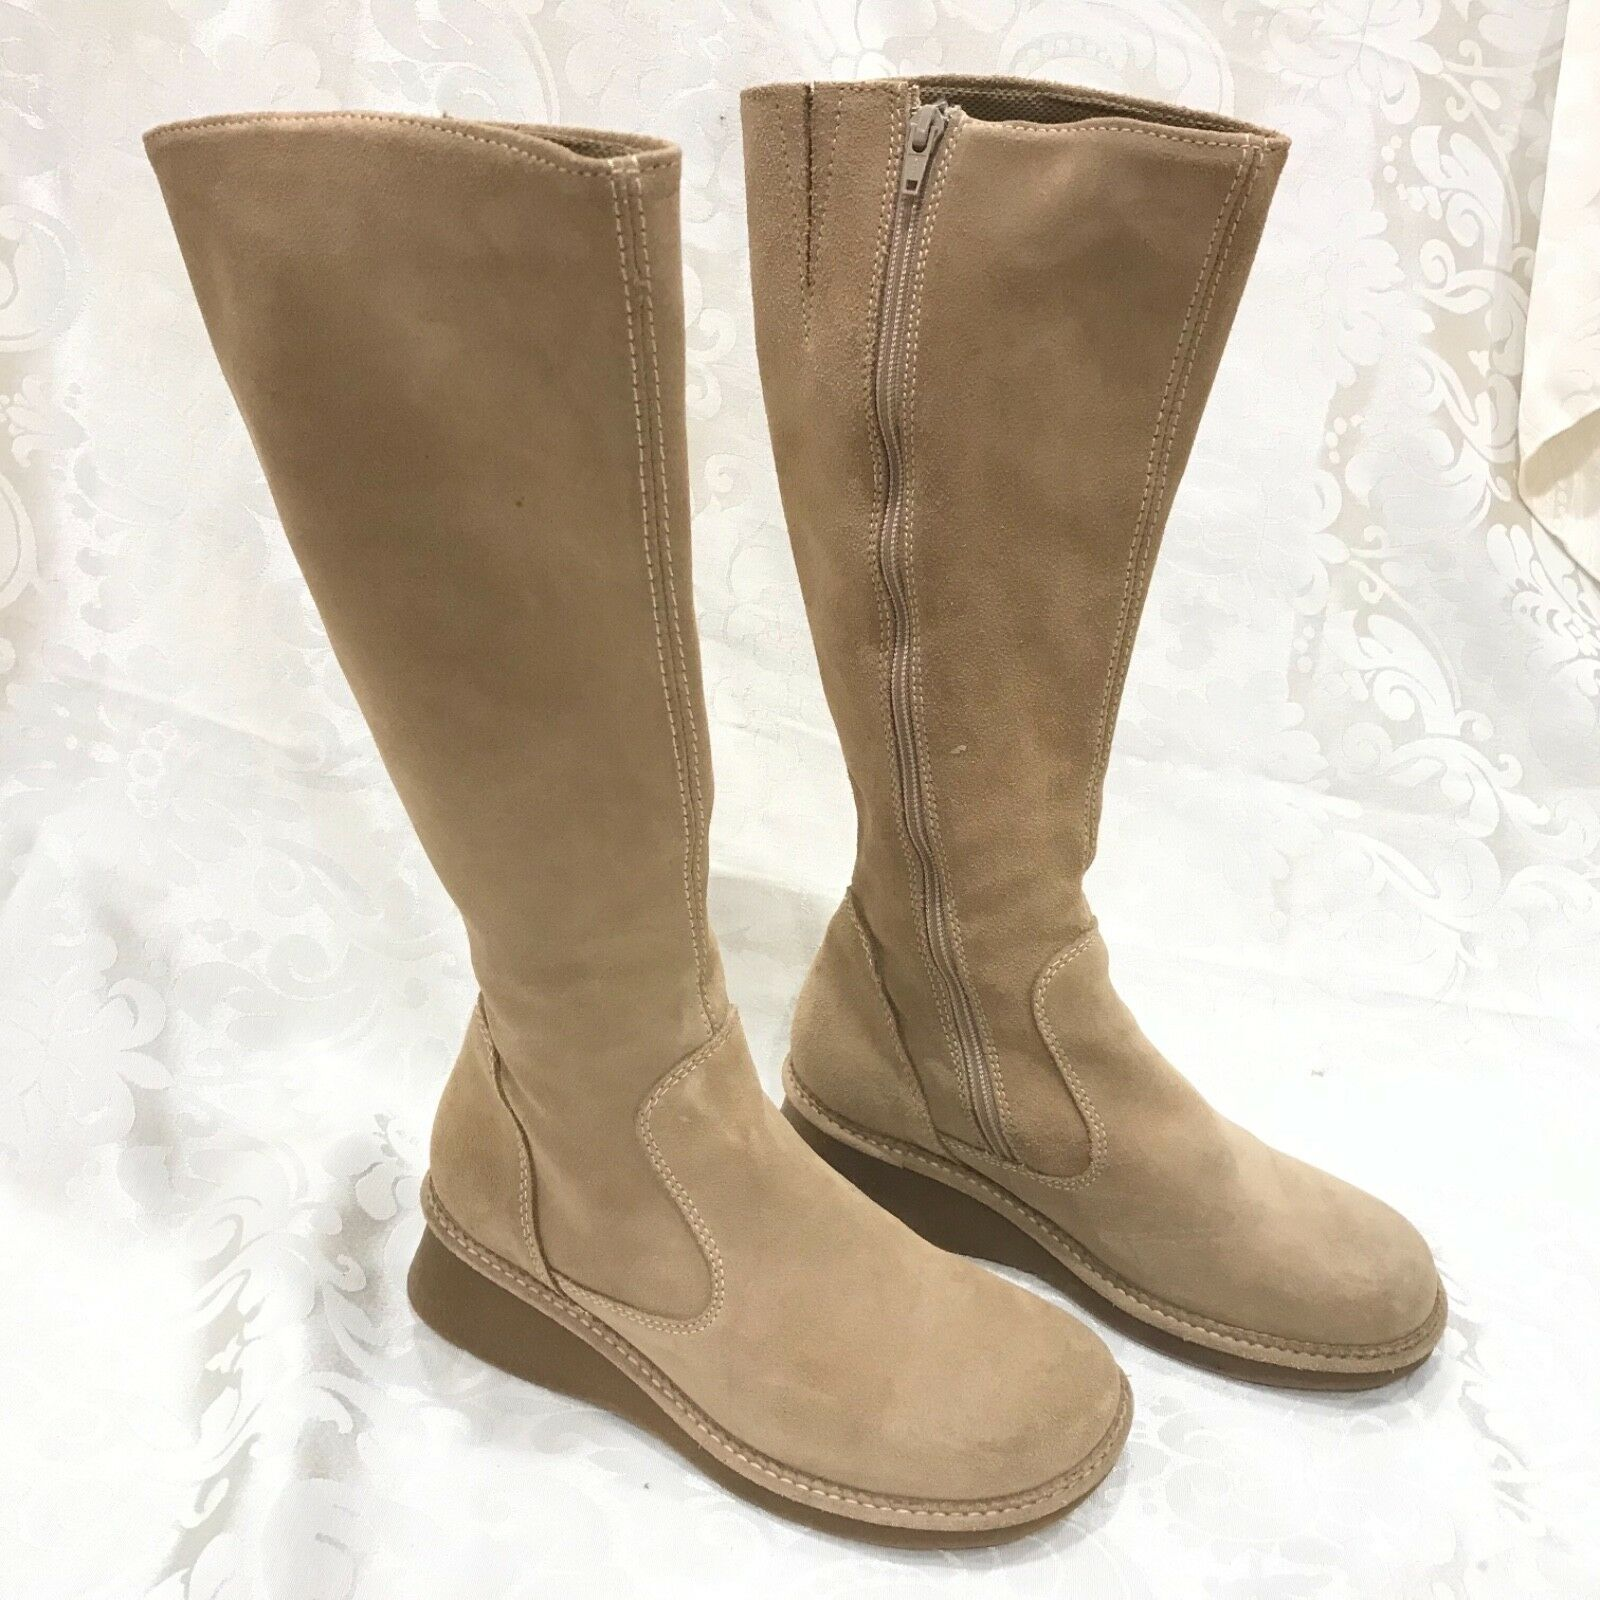 American Eagle suede leather tan brown Calf Knee High High High Boots 8 women  189 6f2d6b